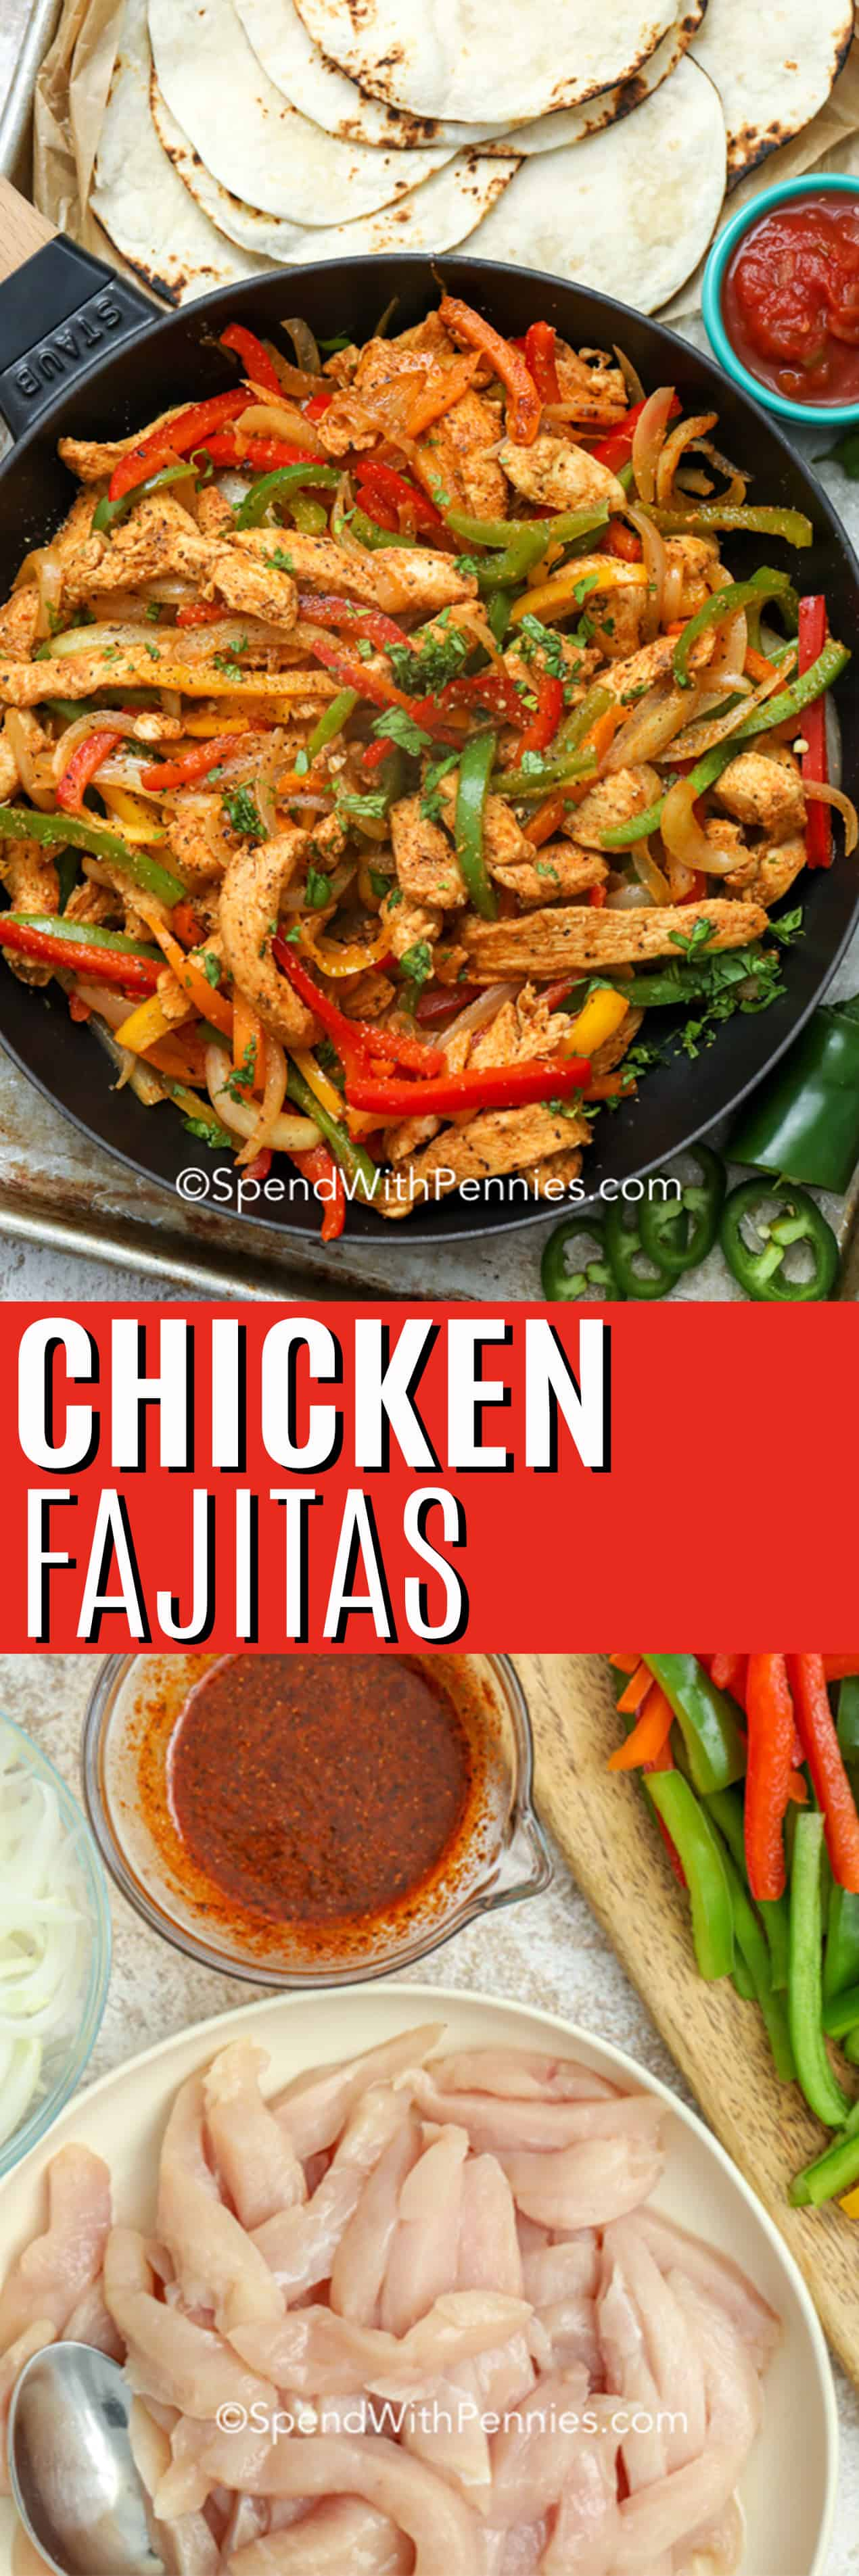 Top photo - Easy Chicken Fajitas in a skillet with tortillas on the side. Bottom photo - sliced chicken in a bowl with seasoning and sliced peppers on the side.